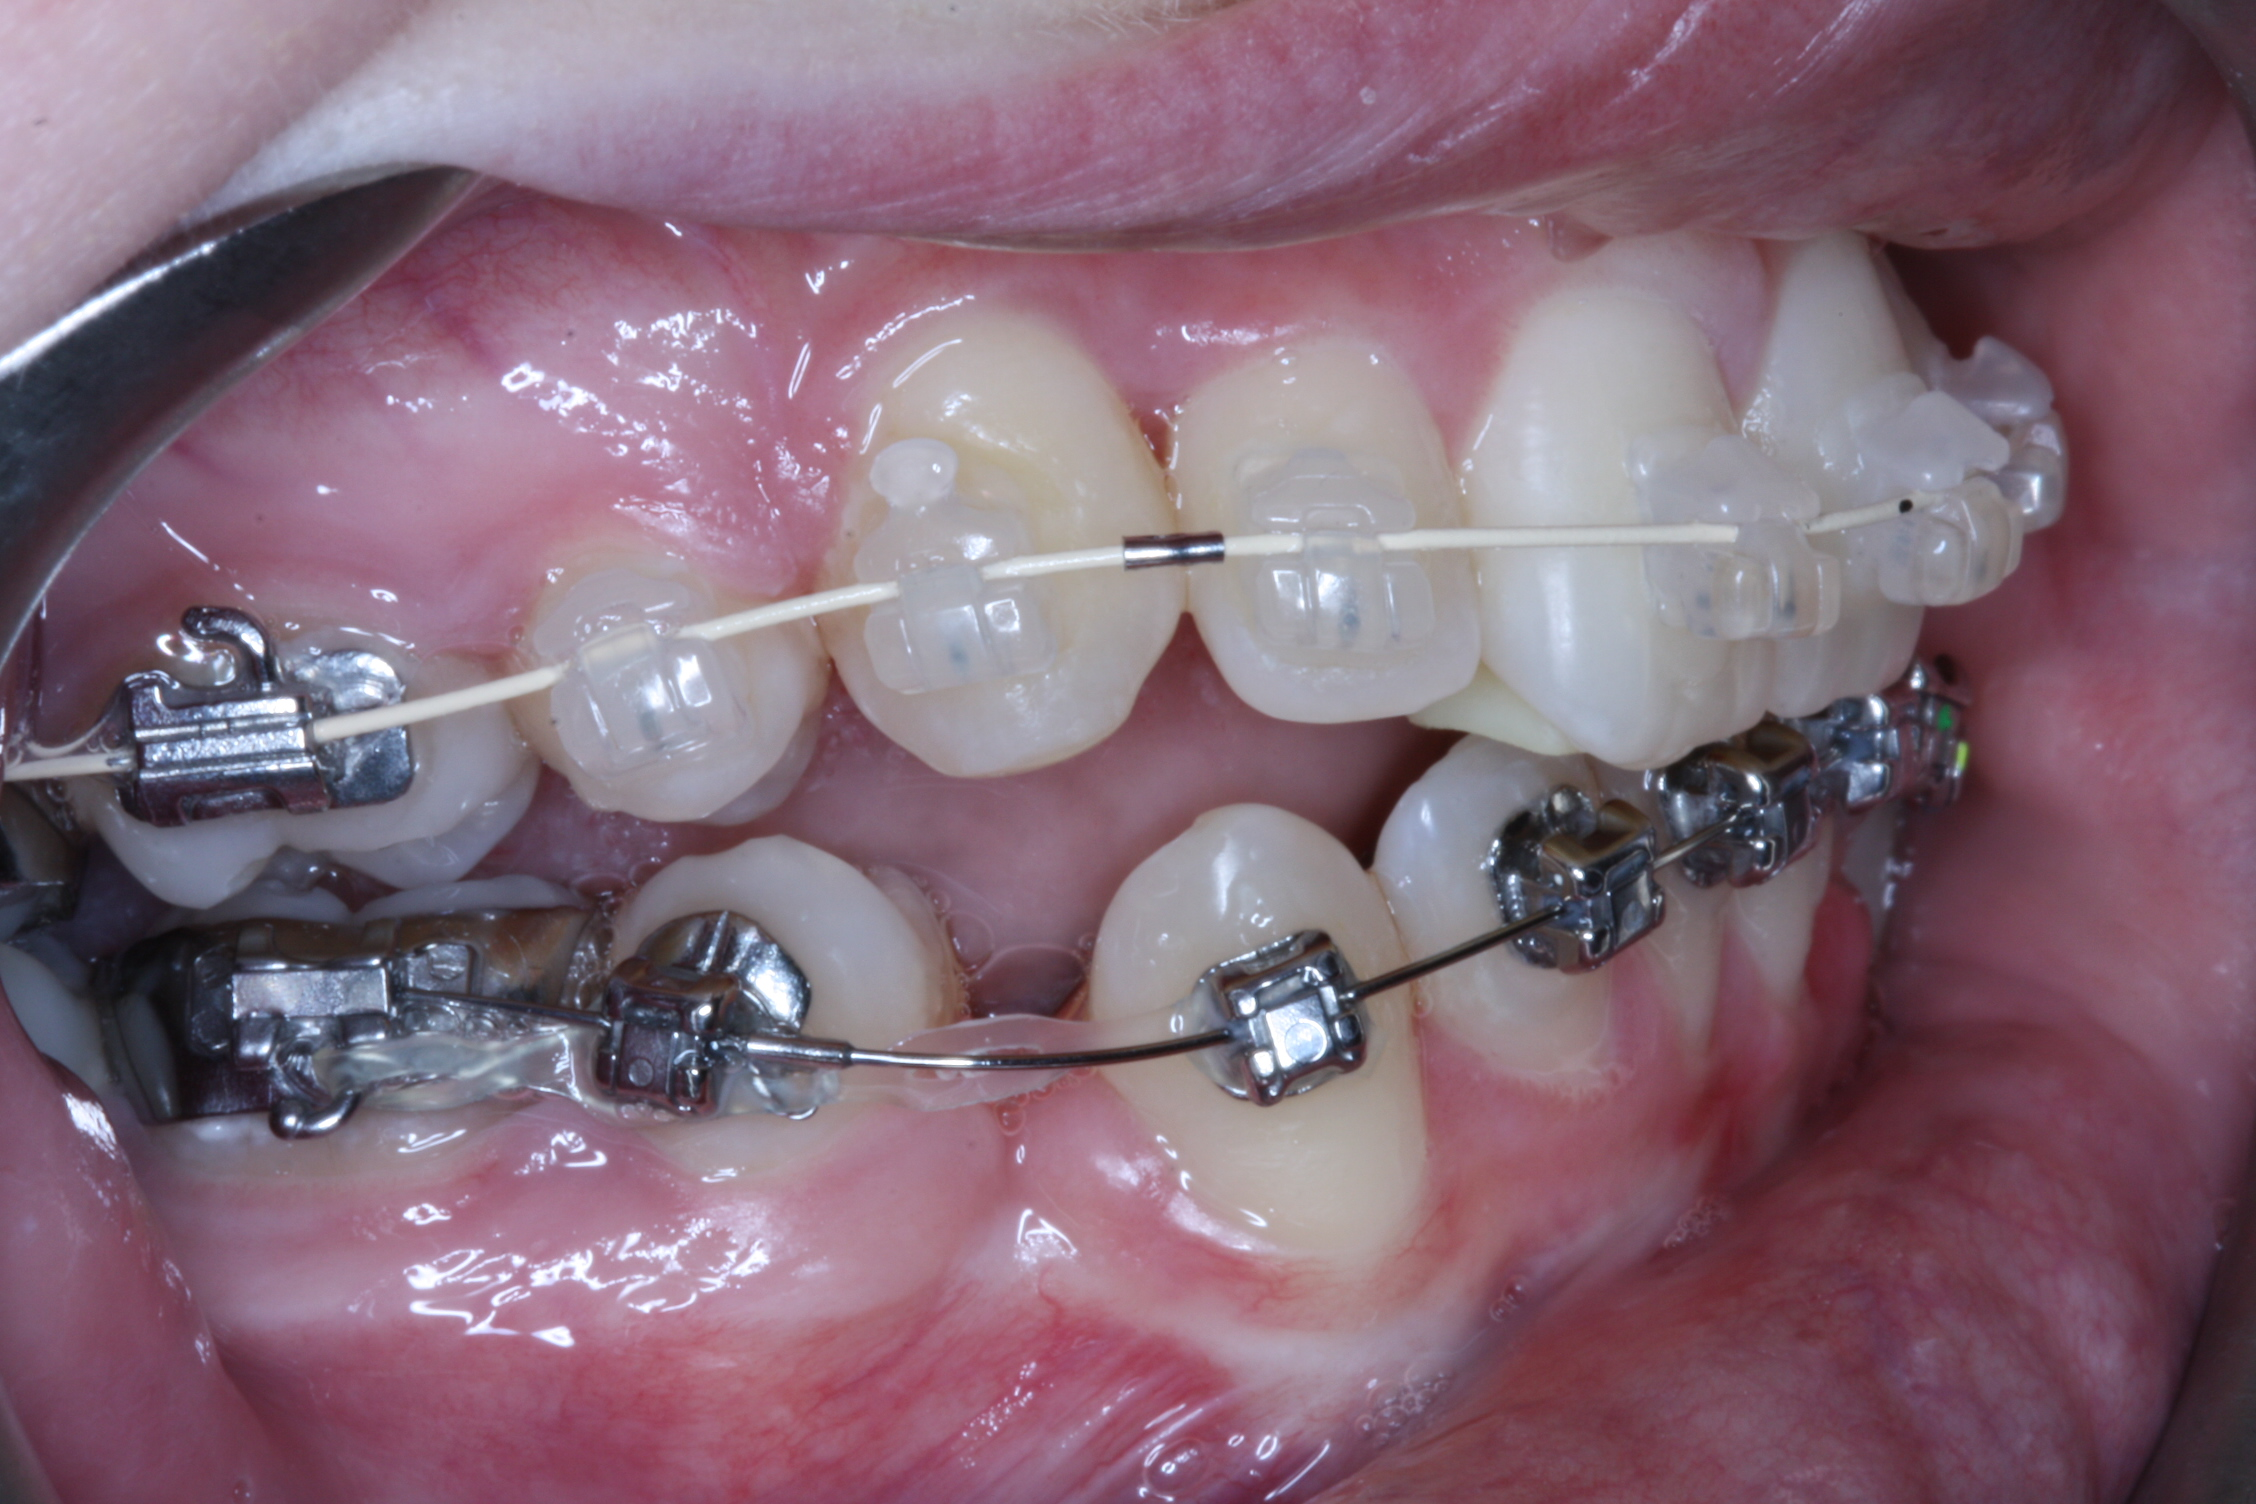 Space between teeth in treatment isn't unusual, but why would there be spaces between teeth to begin with?